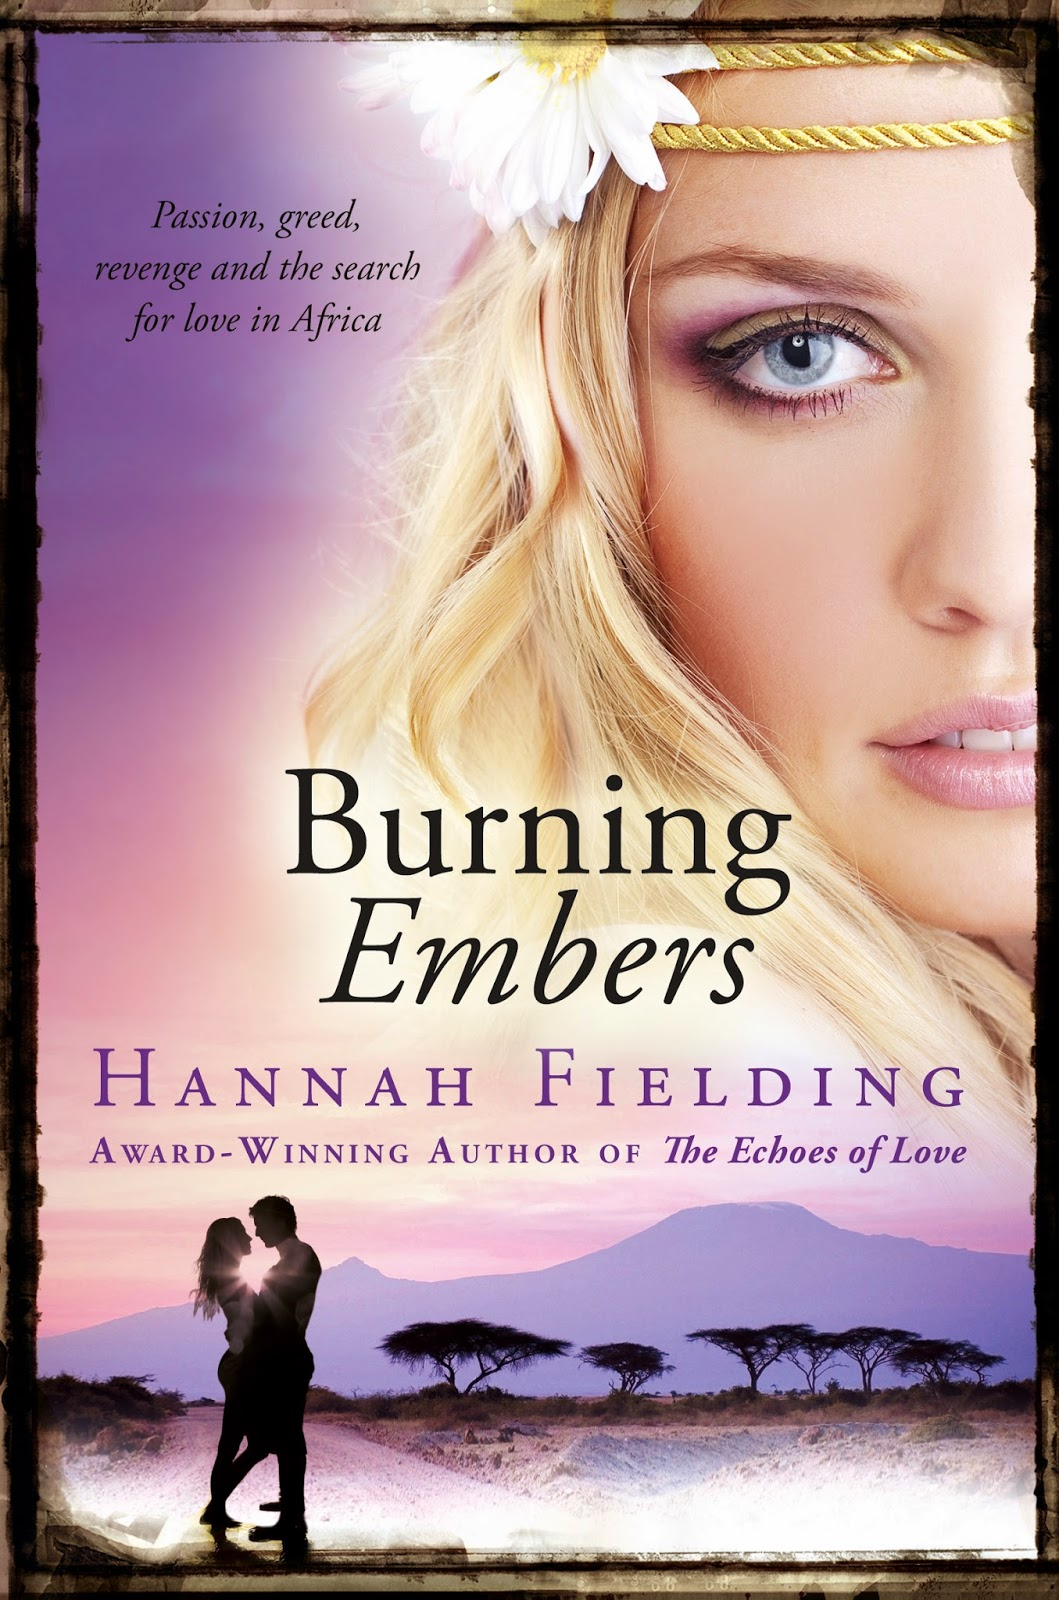 https://www.goodreads.com/book/show/13063259-burning-embers?from_search=true